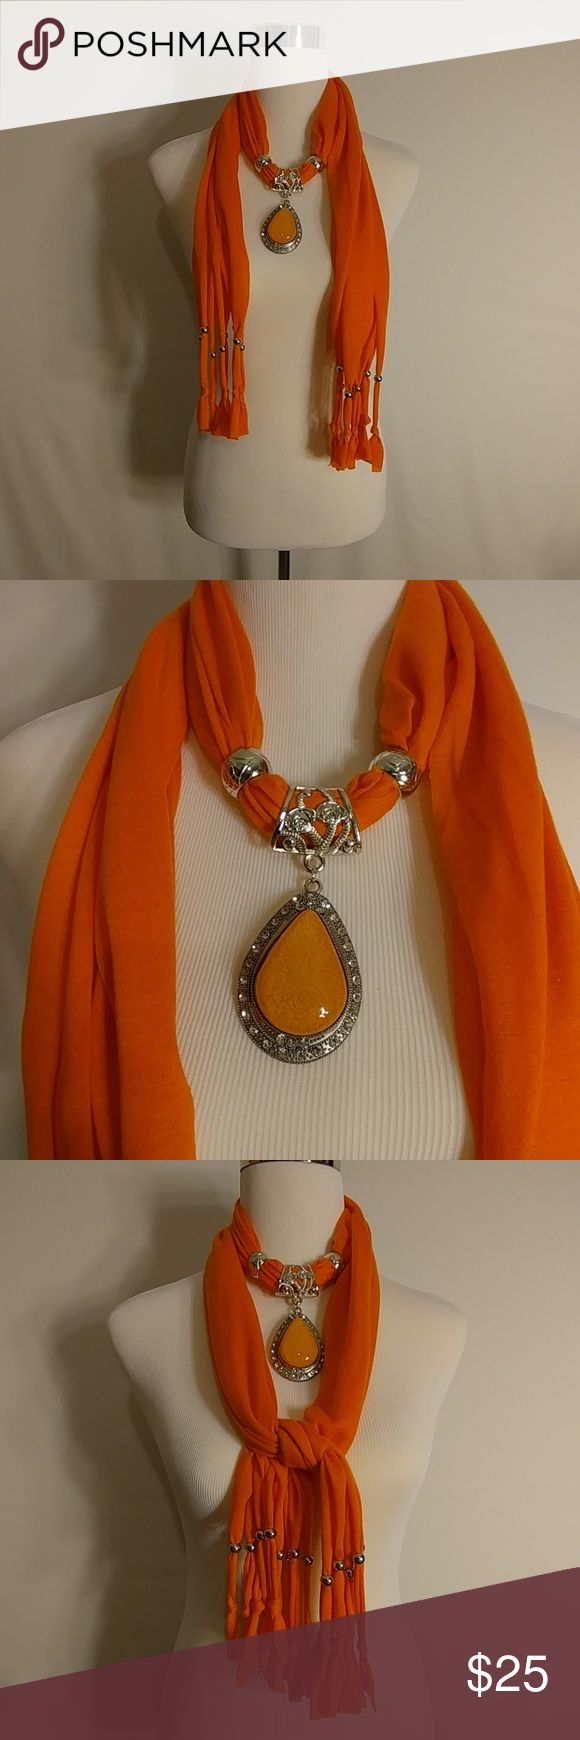 Woman's necklace scarf Lightweight women's orange necklace scarf brand new never worn Accessories Scarves & Wraps